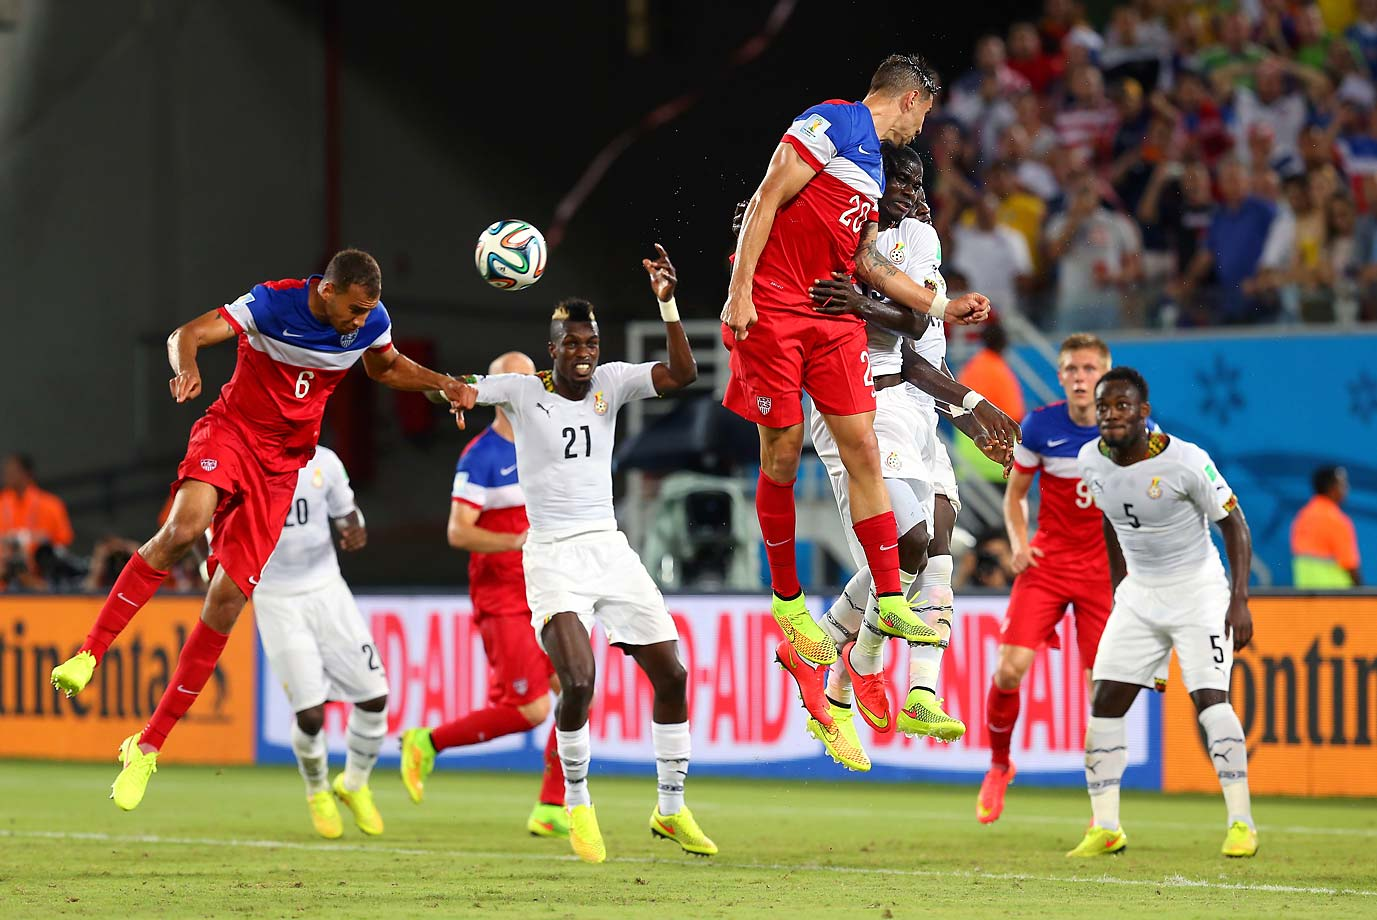 The goal was the first by a U.S. substitute player in the history of the World Cup. It came in the waning minutes as the U.S. was desperately trying to survive waves of attacks from Ghana.